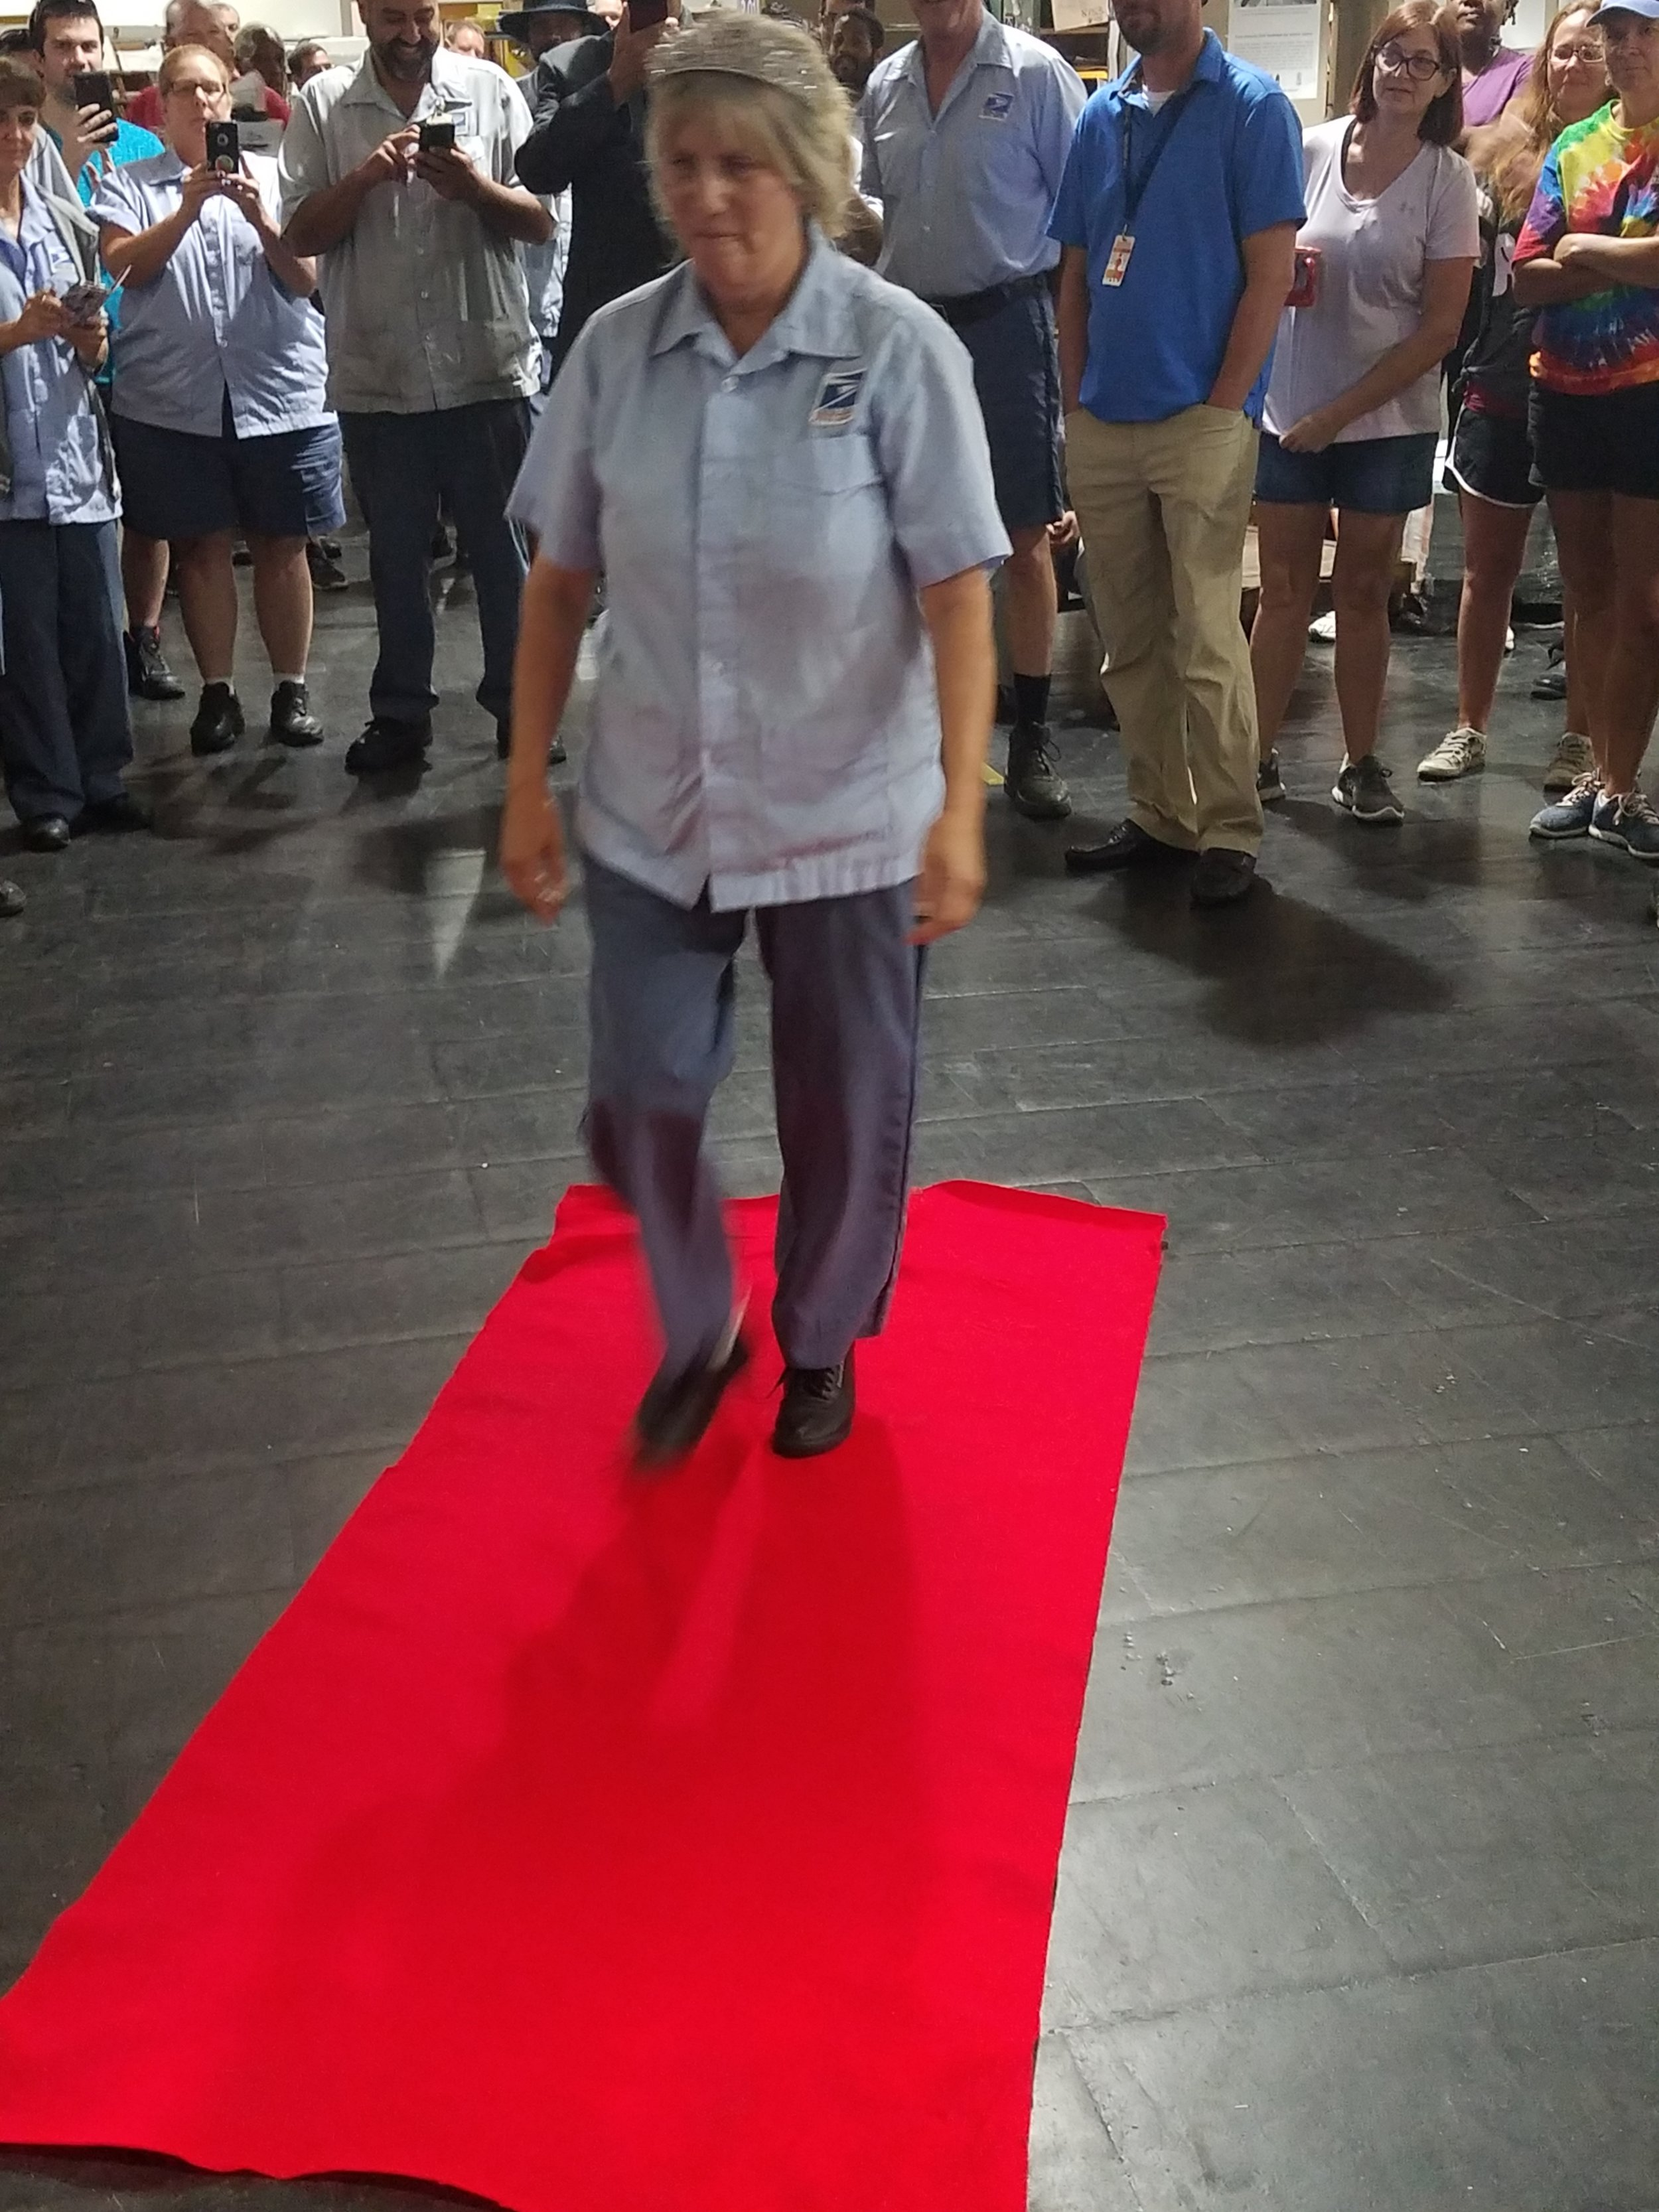 Marcy walks the red carpet to retirement